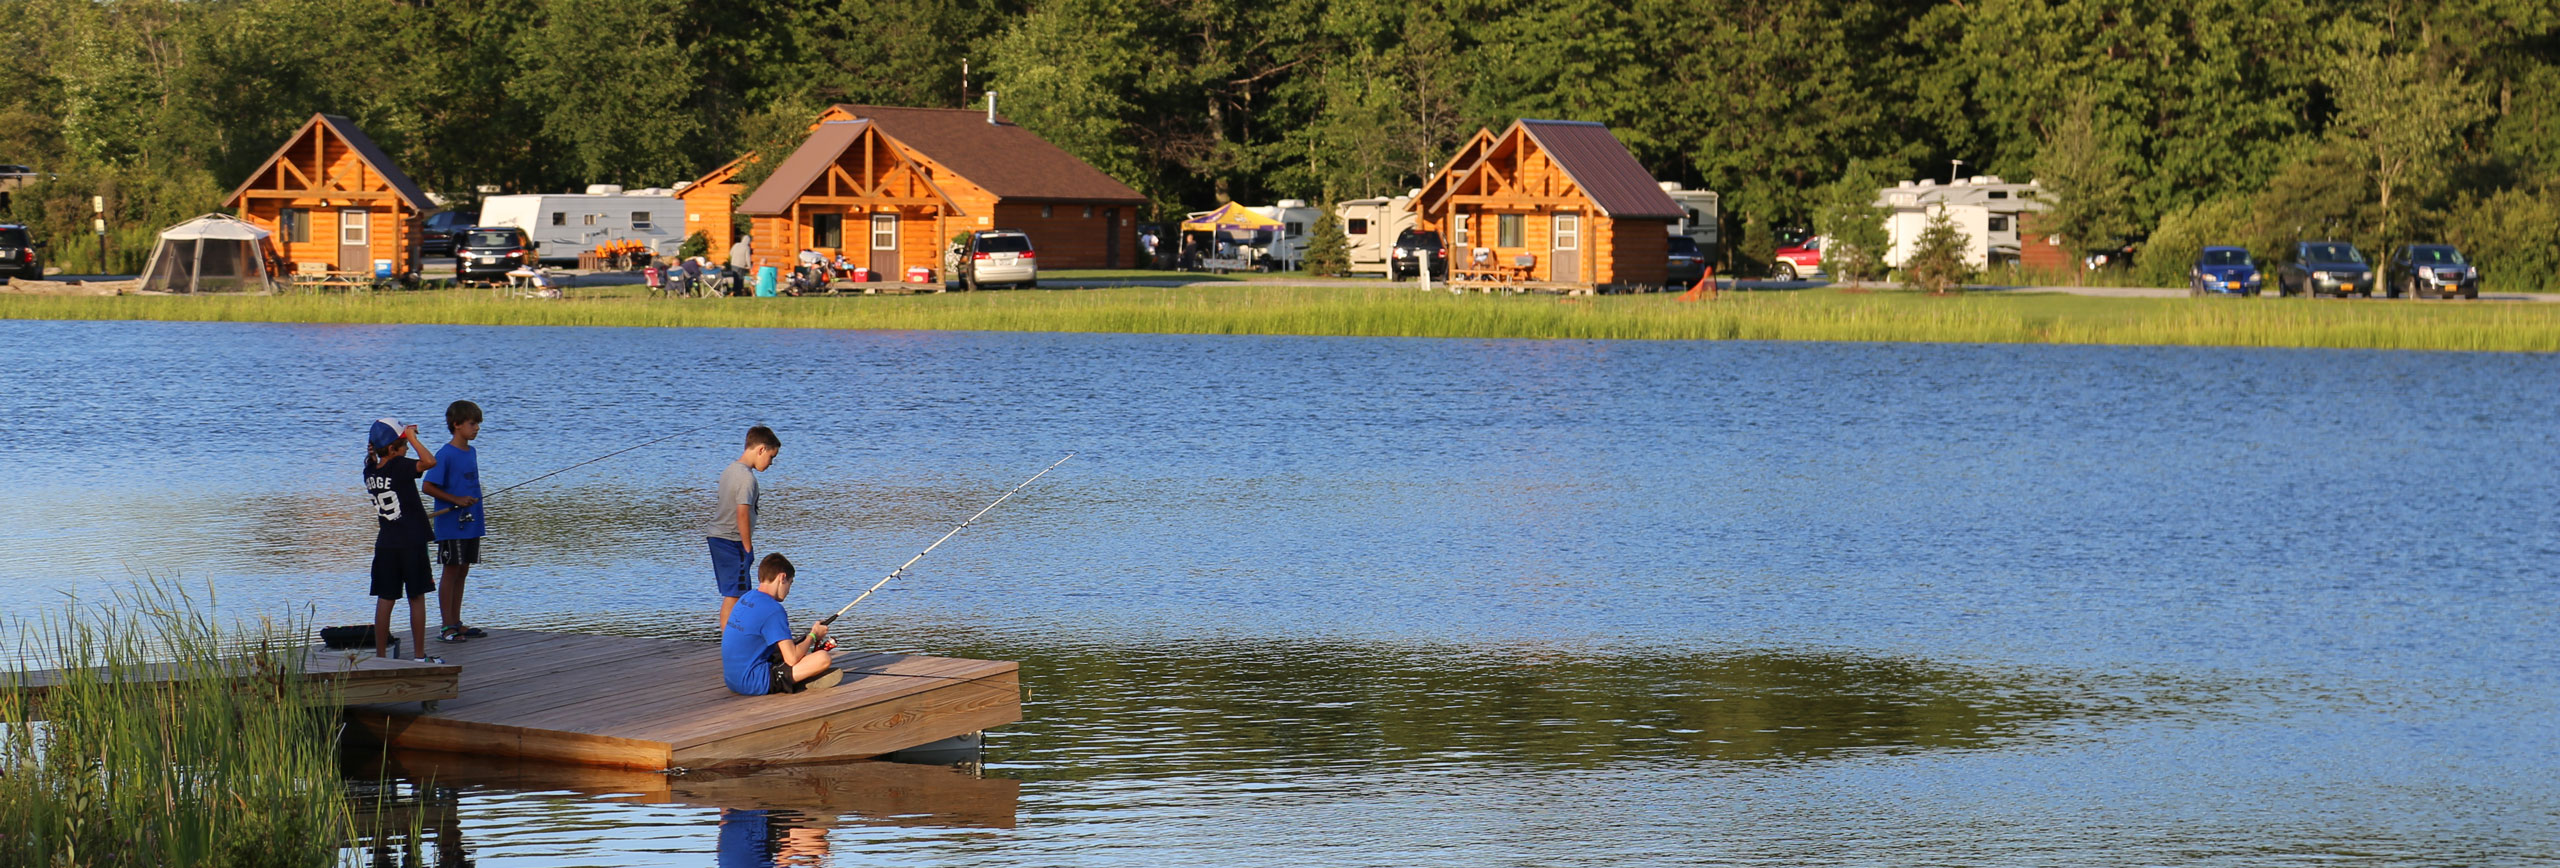 children fishing on the lake at Branches of Niagara campground